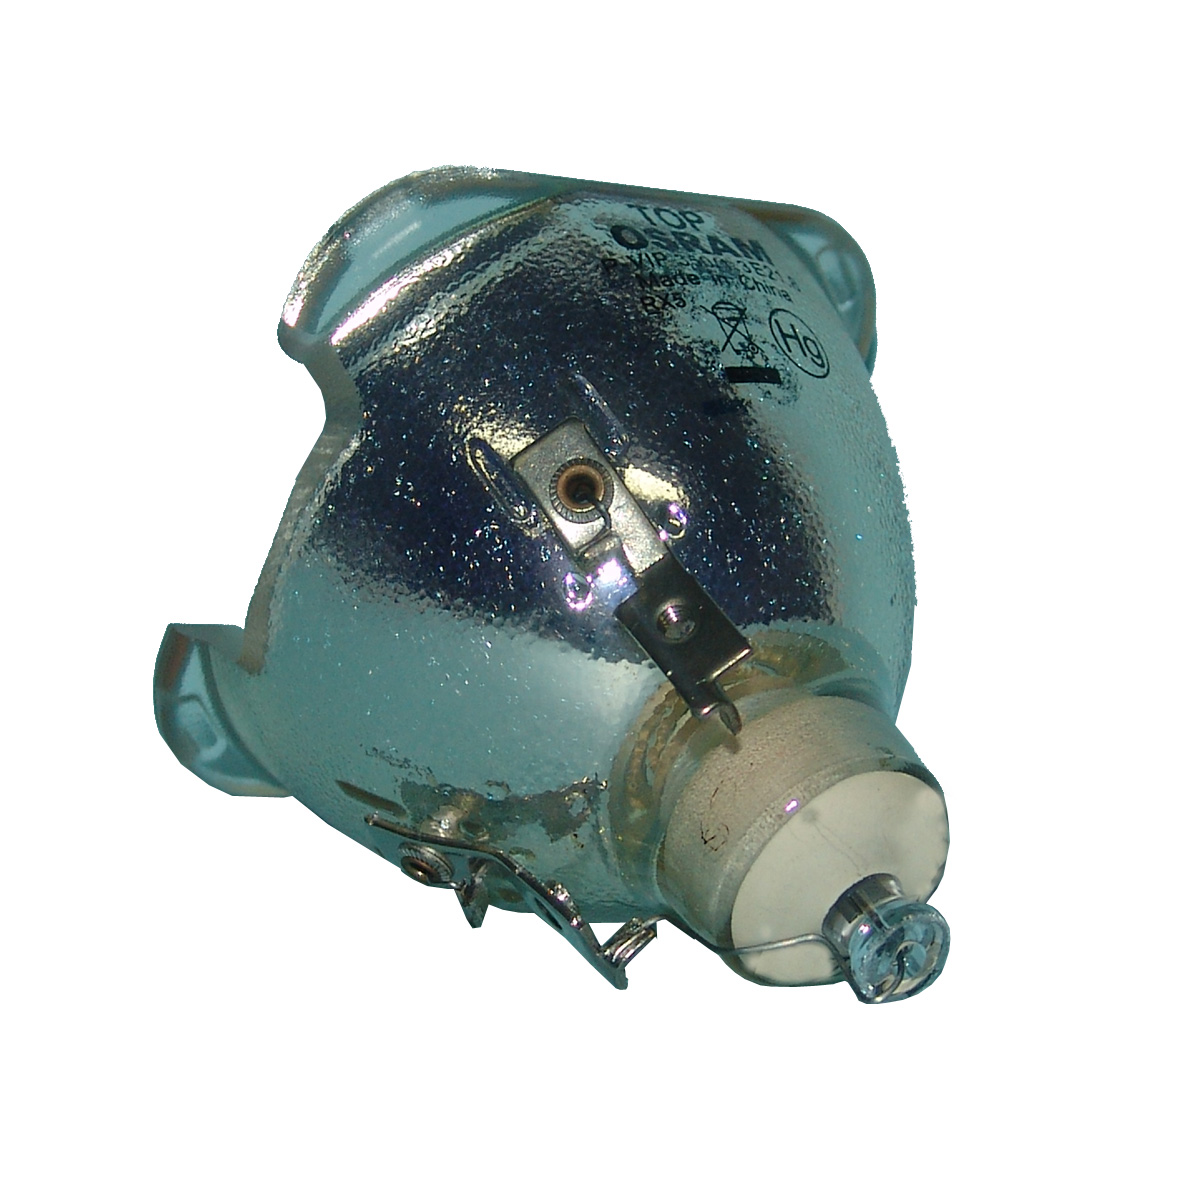 Original Osram Projector Lamp Replacement with Housing for Barco PHWX-81B - image 3 de 5